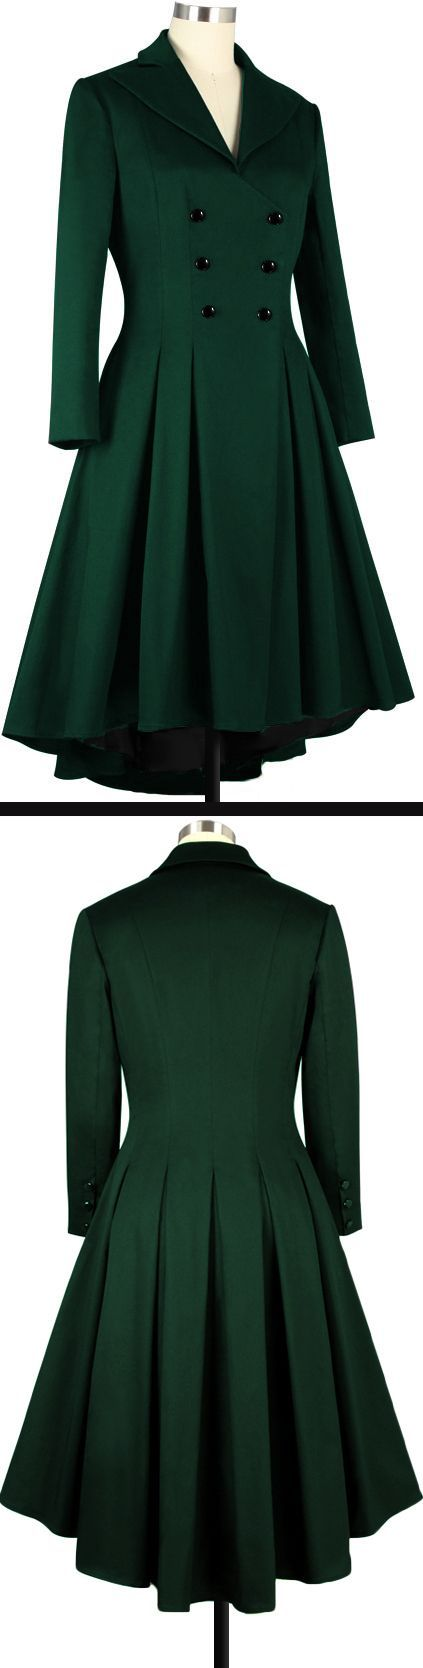 Green Pleated Swing Coat Chic Star Design by Amber